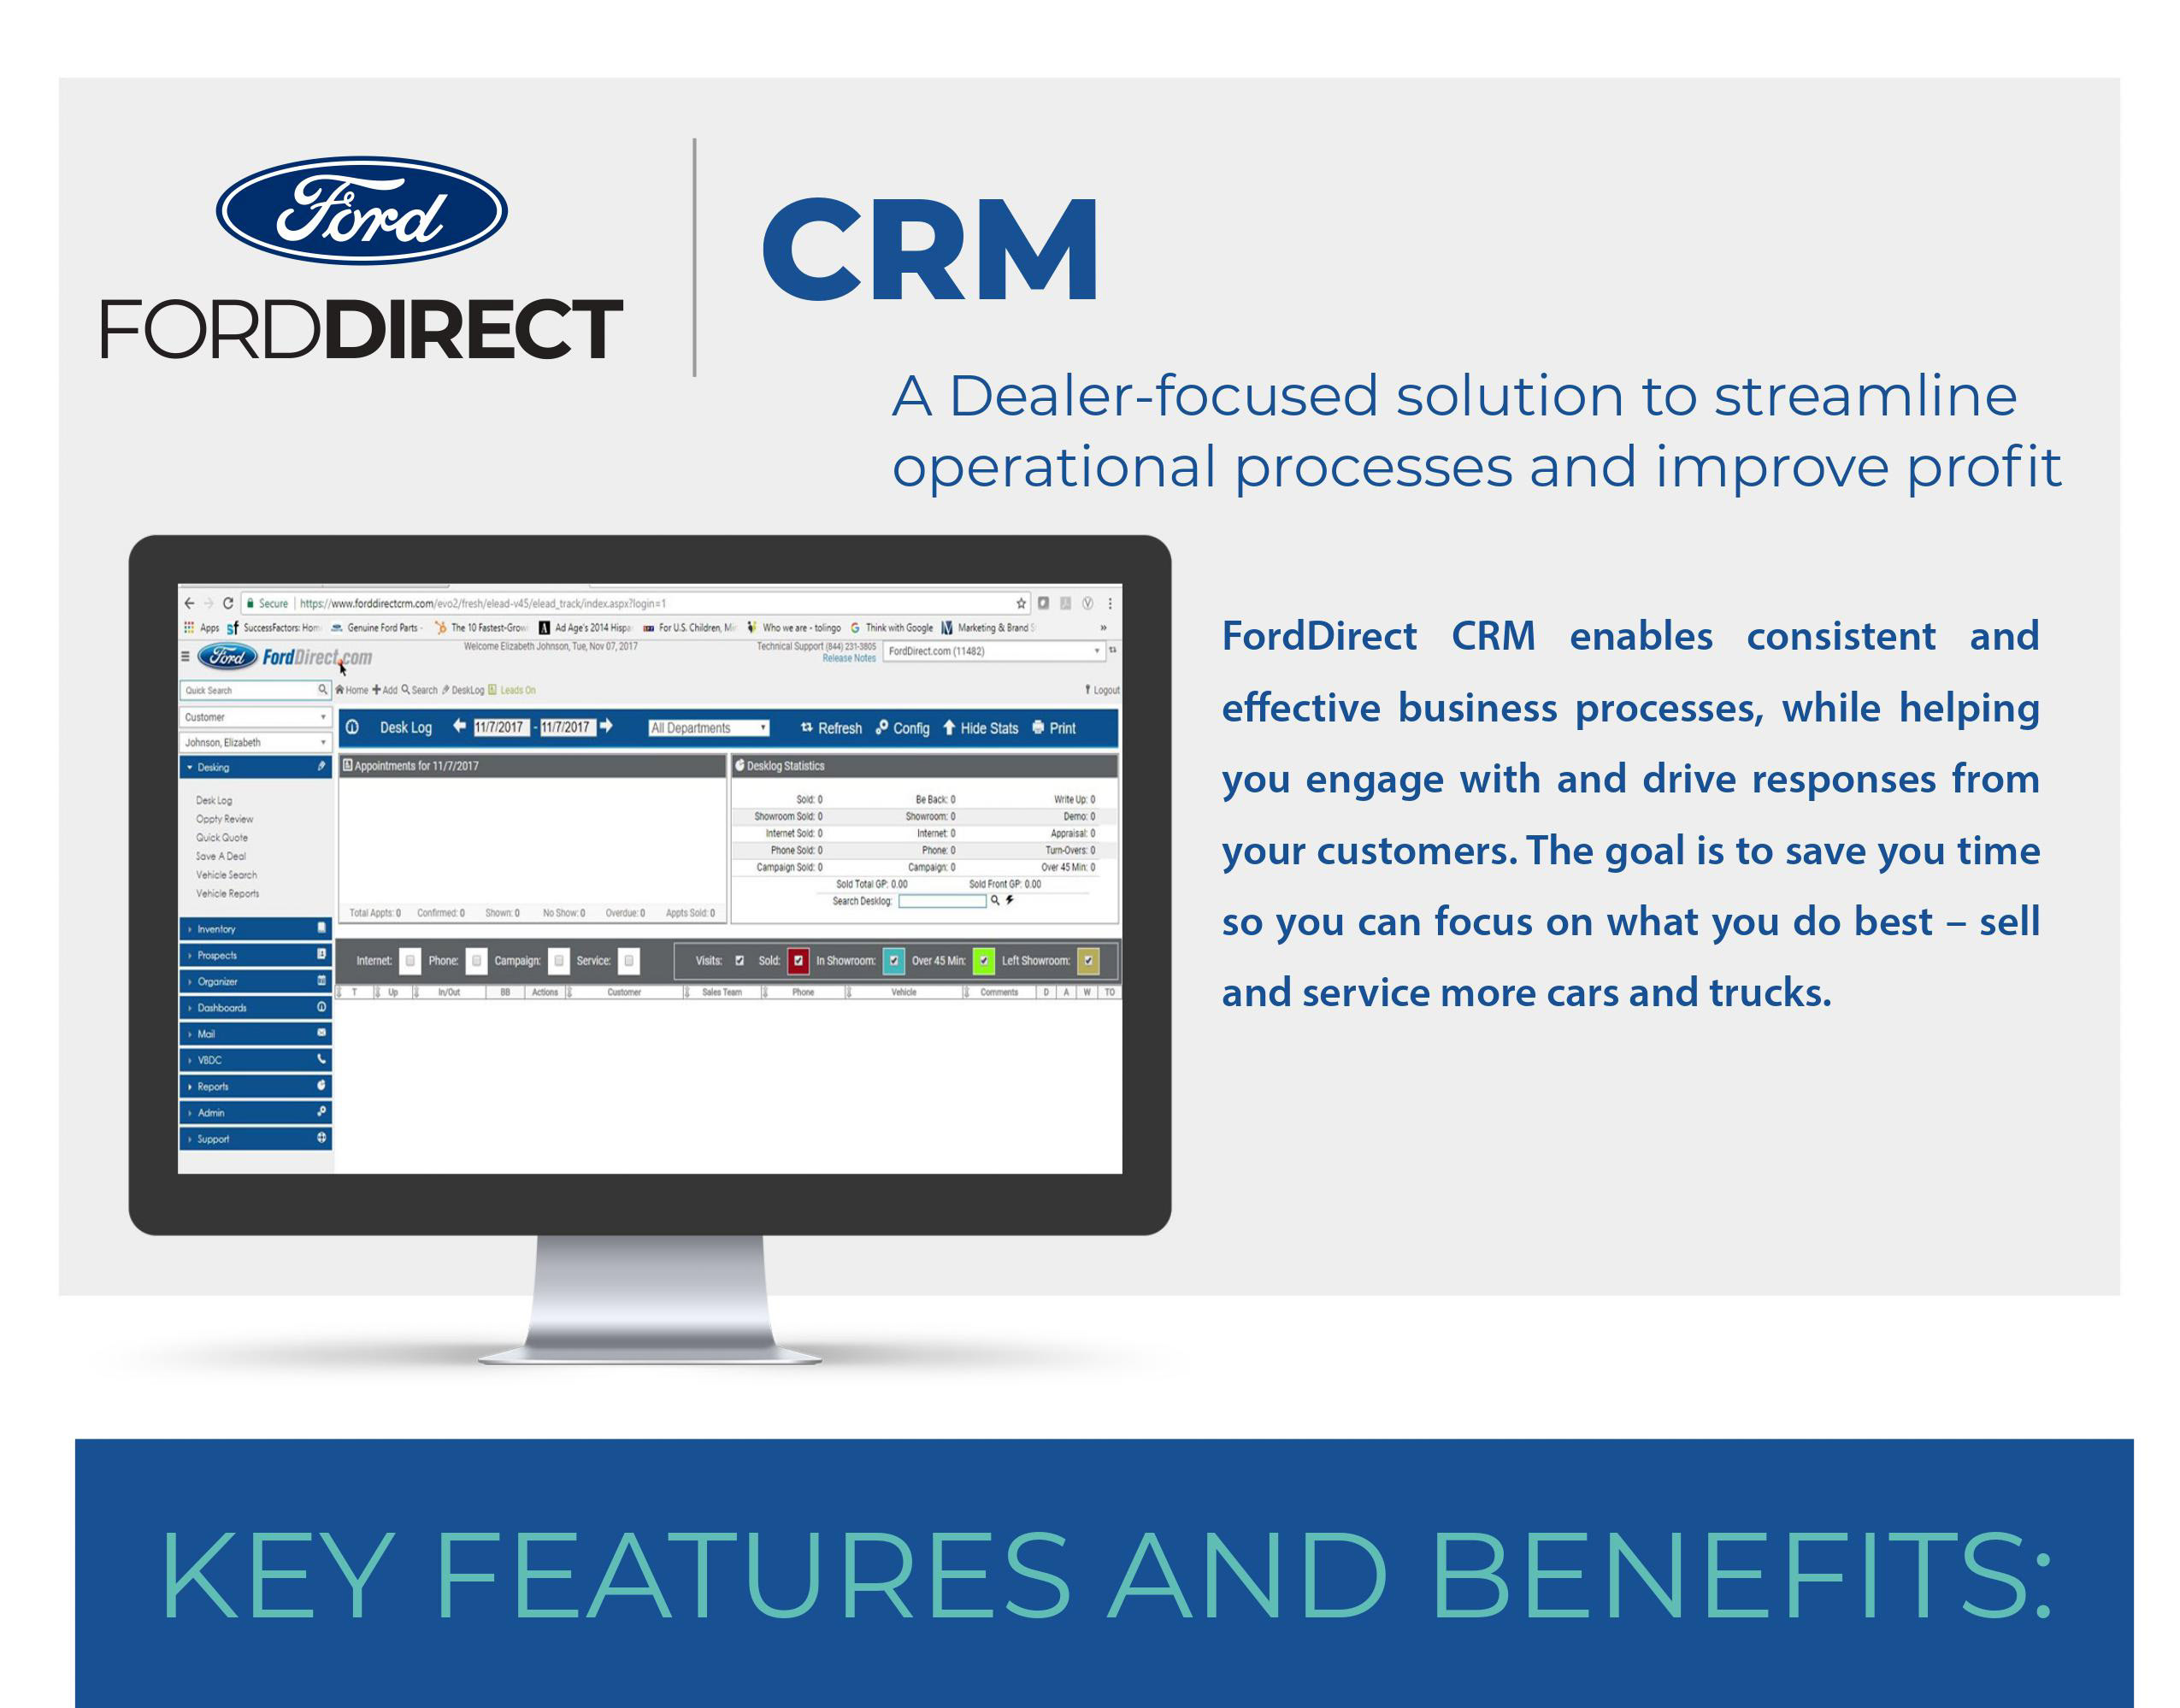 Forddirect crm 2 page sales brochure